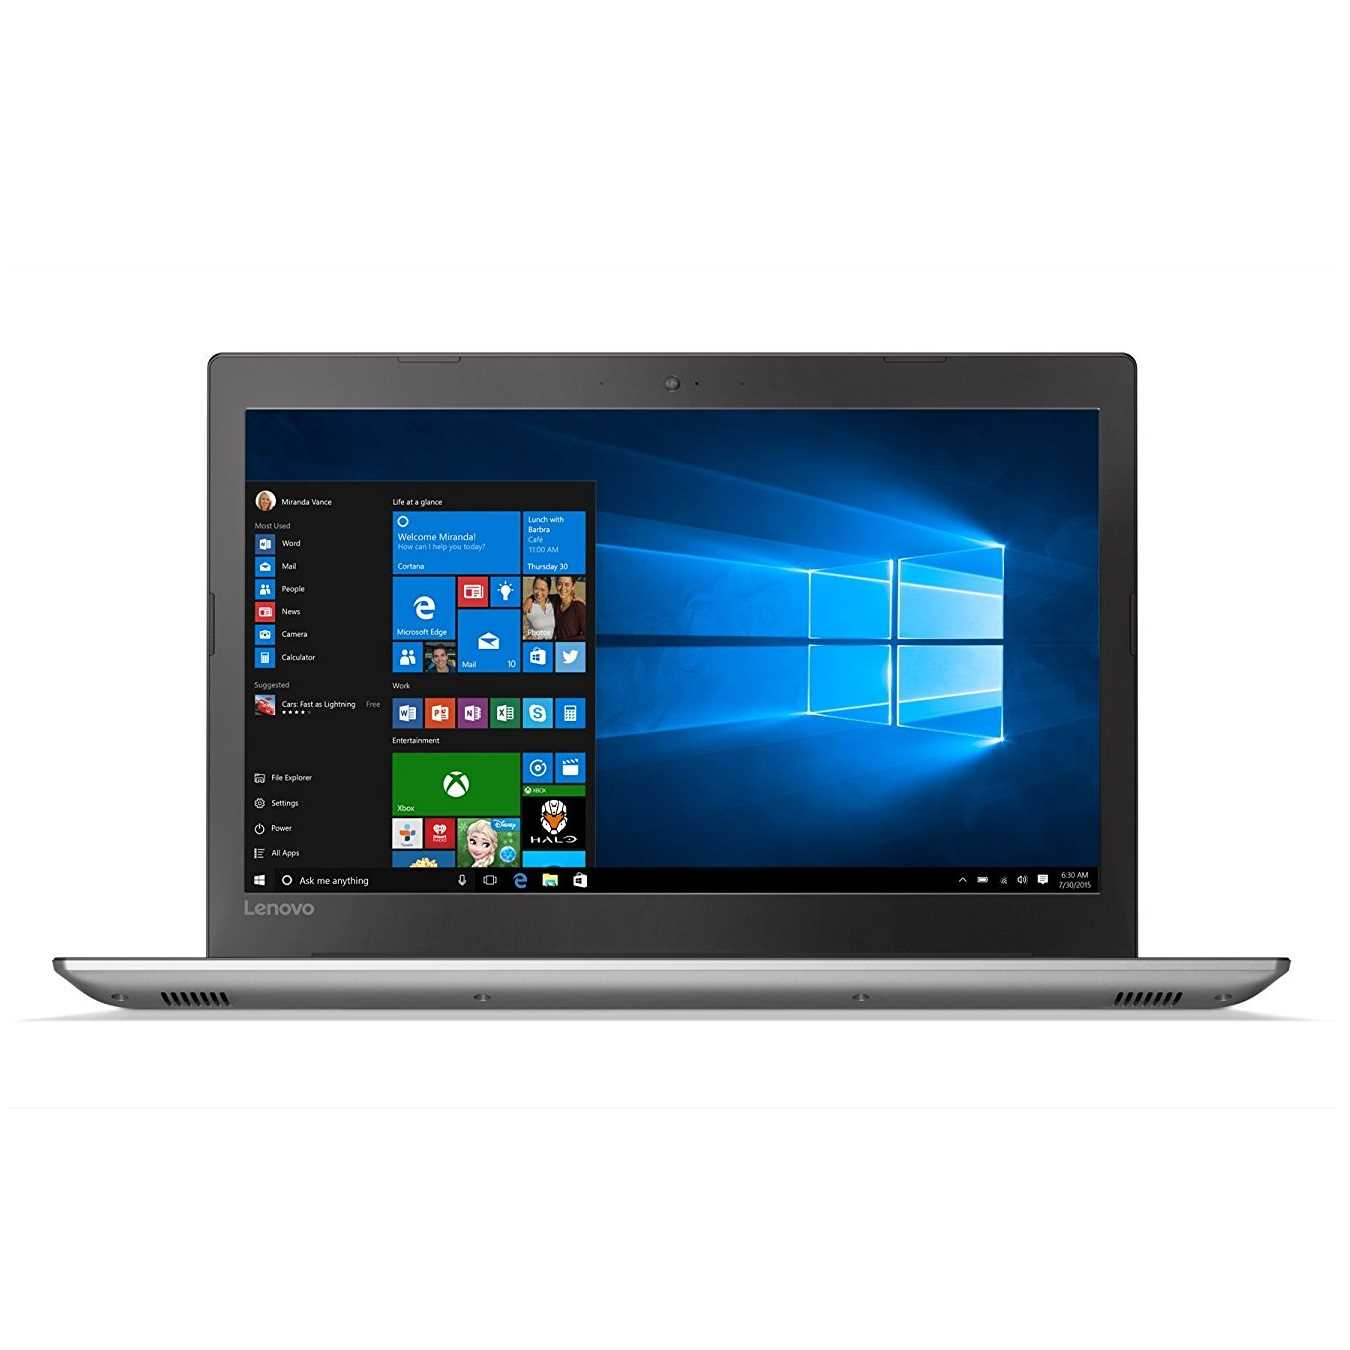 Lenovo IdeaPad 520 (80YL00RXIN) Laptop